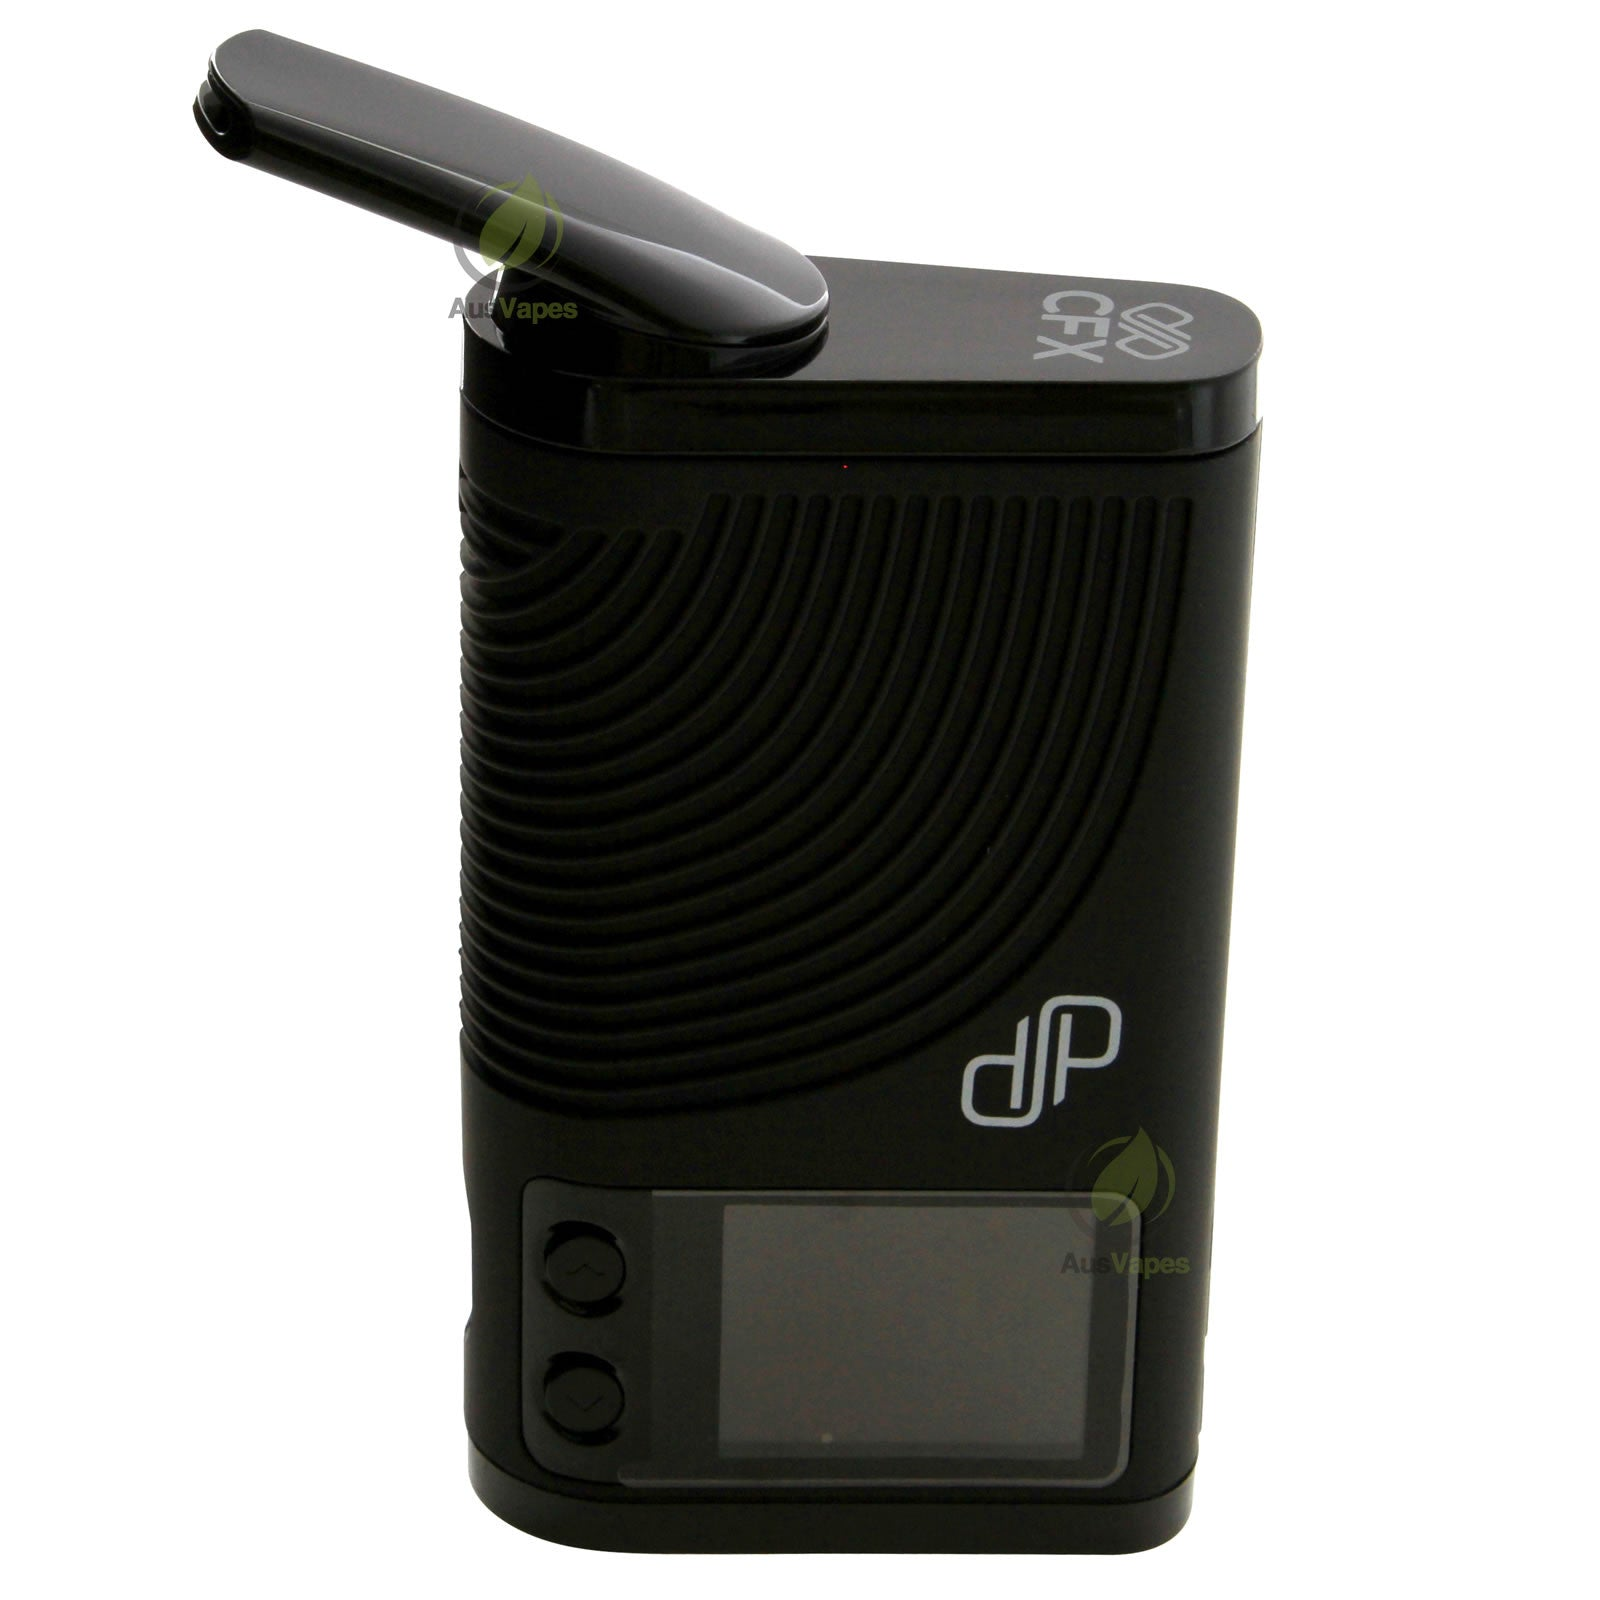 Boundless CFX Vaporizer switched off mode